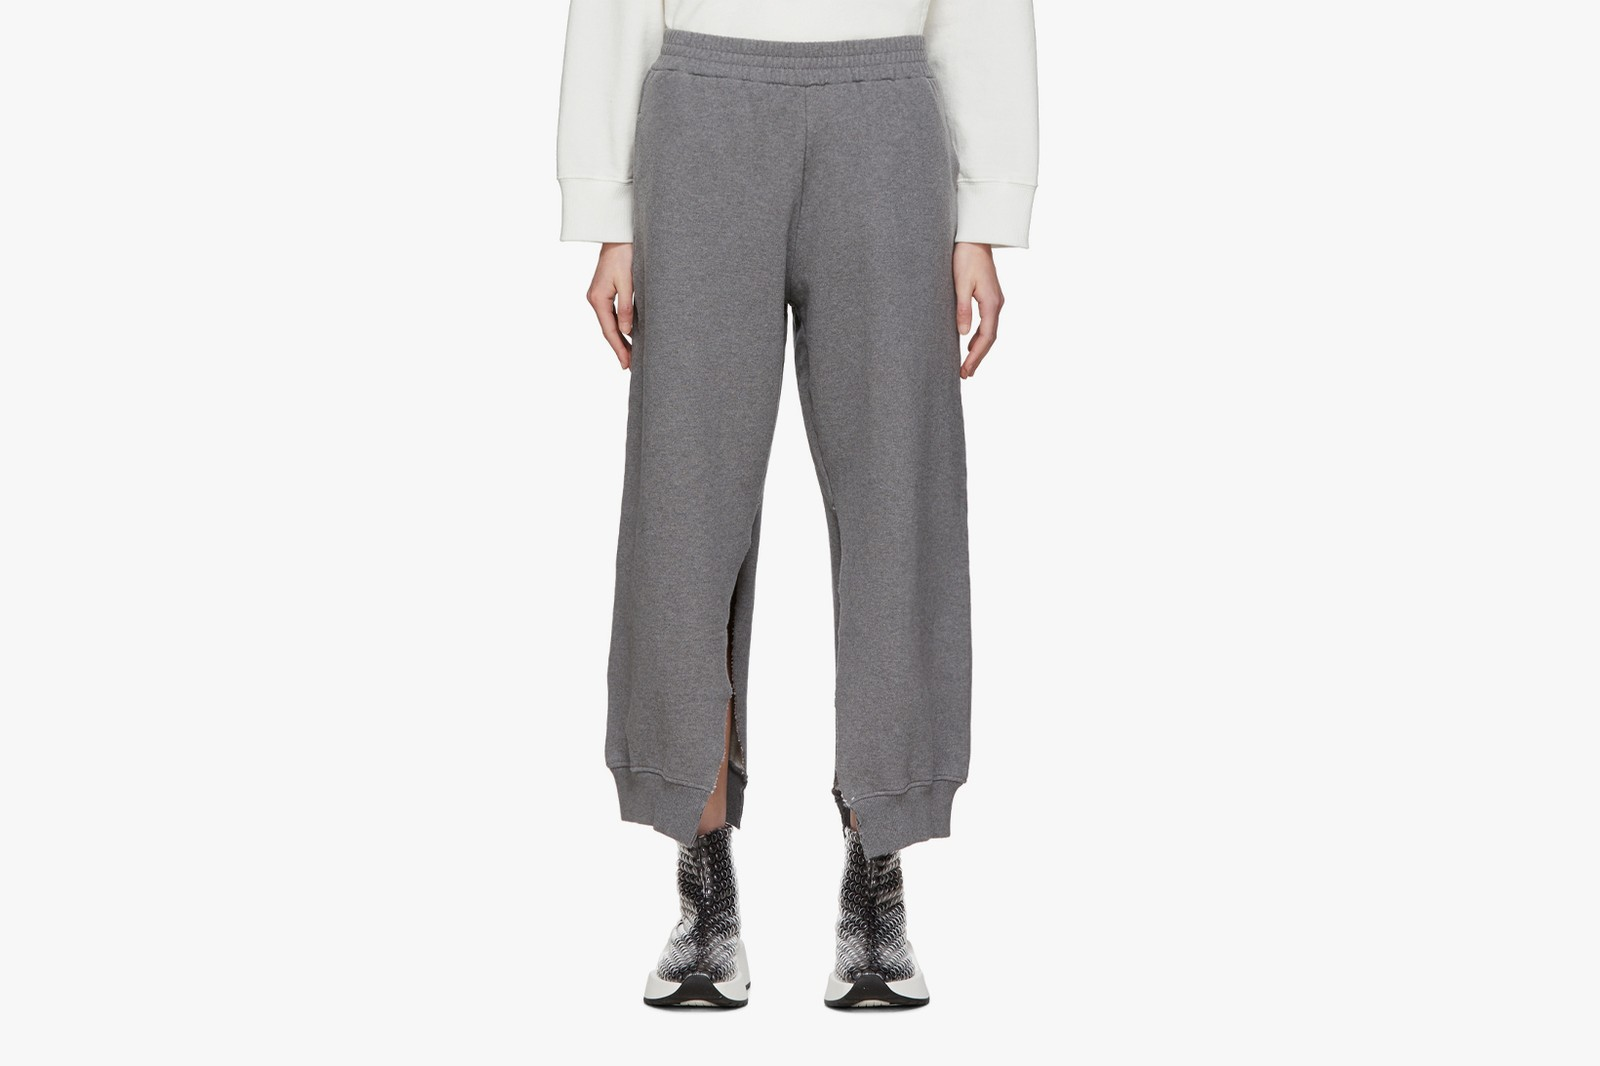 best comfy-chic pants at-home loungwear spring pleats please issey miyake ader error fumito ganryu